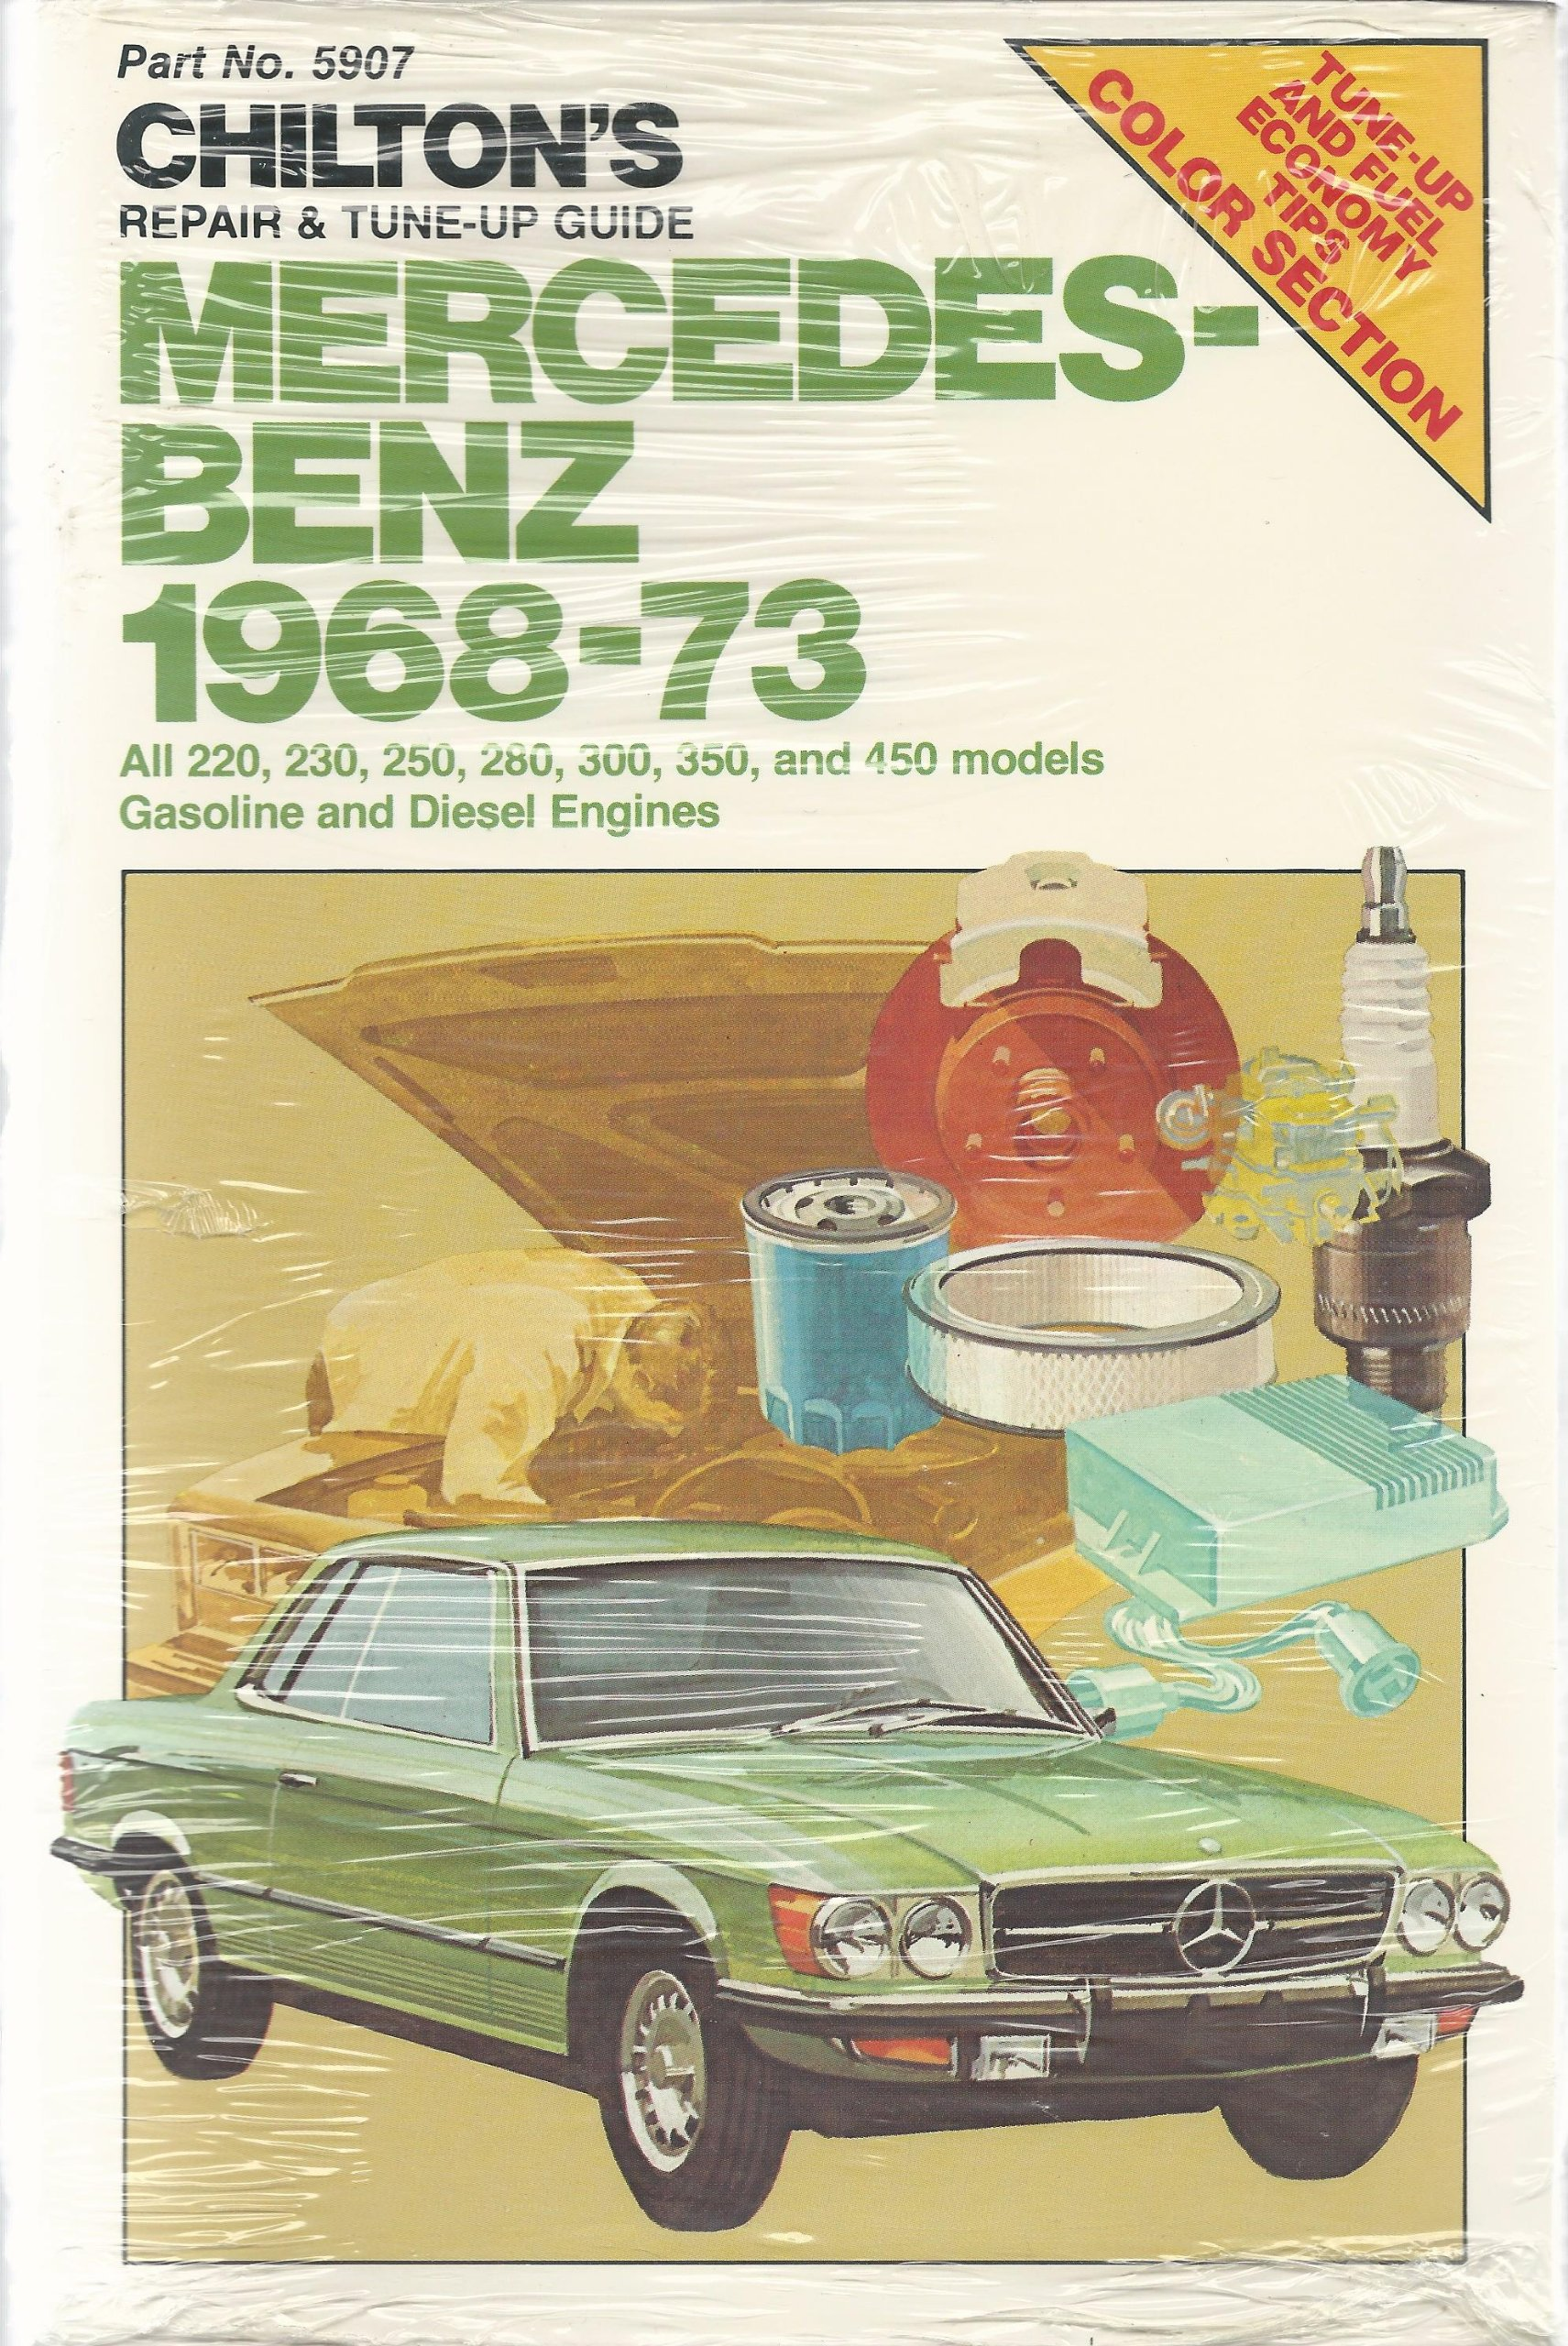 Chilton's Repair & Tune-Up Guide Mercedes-Benz 1968-73: All 220, 230